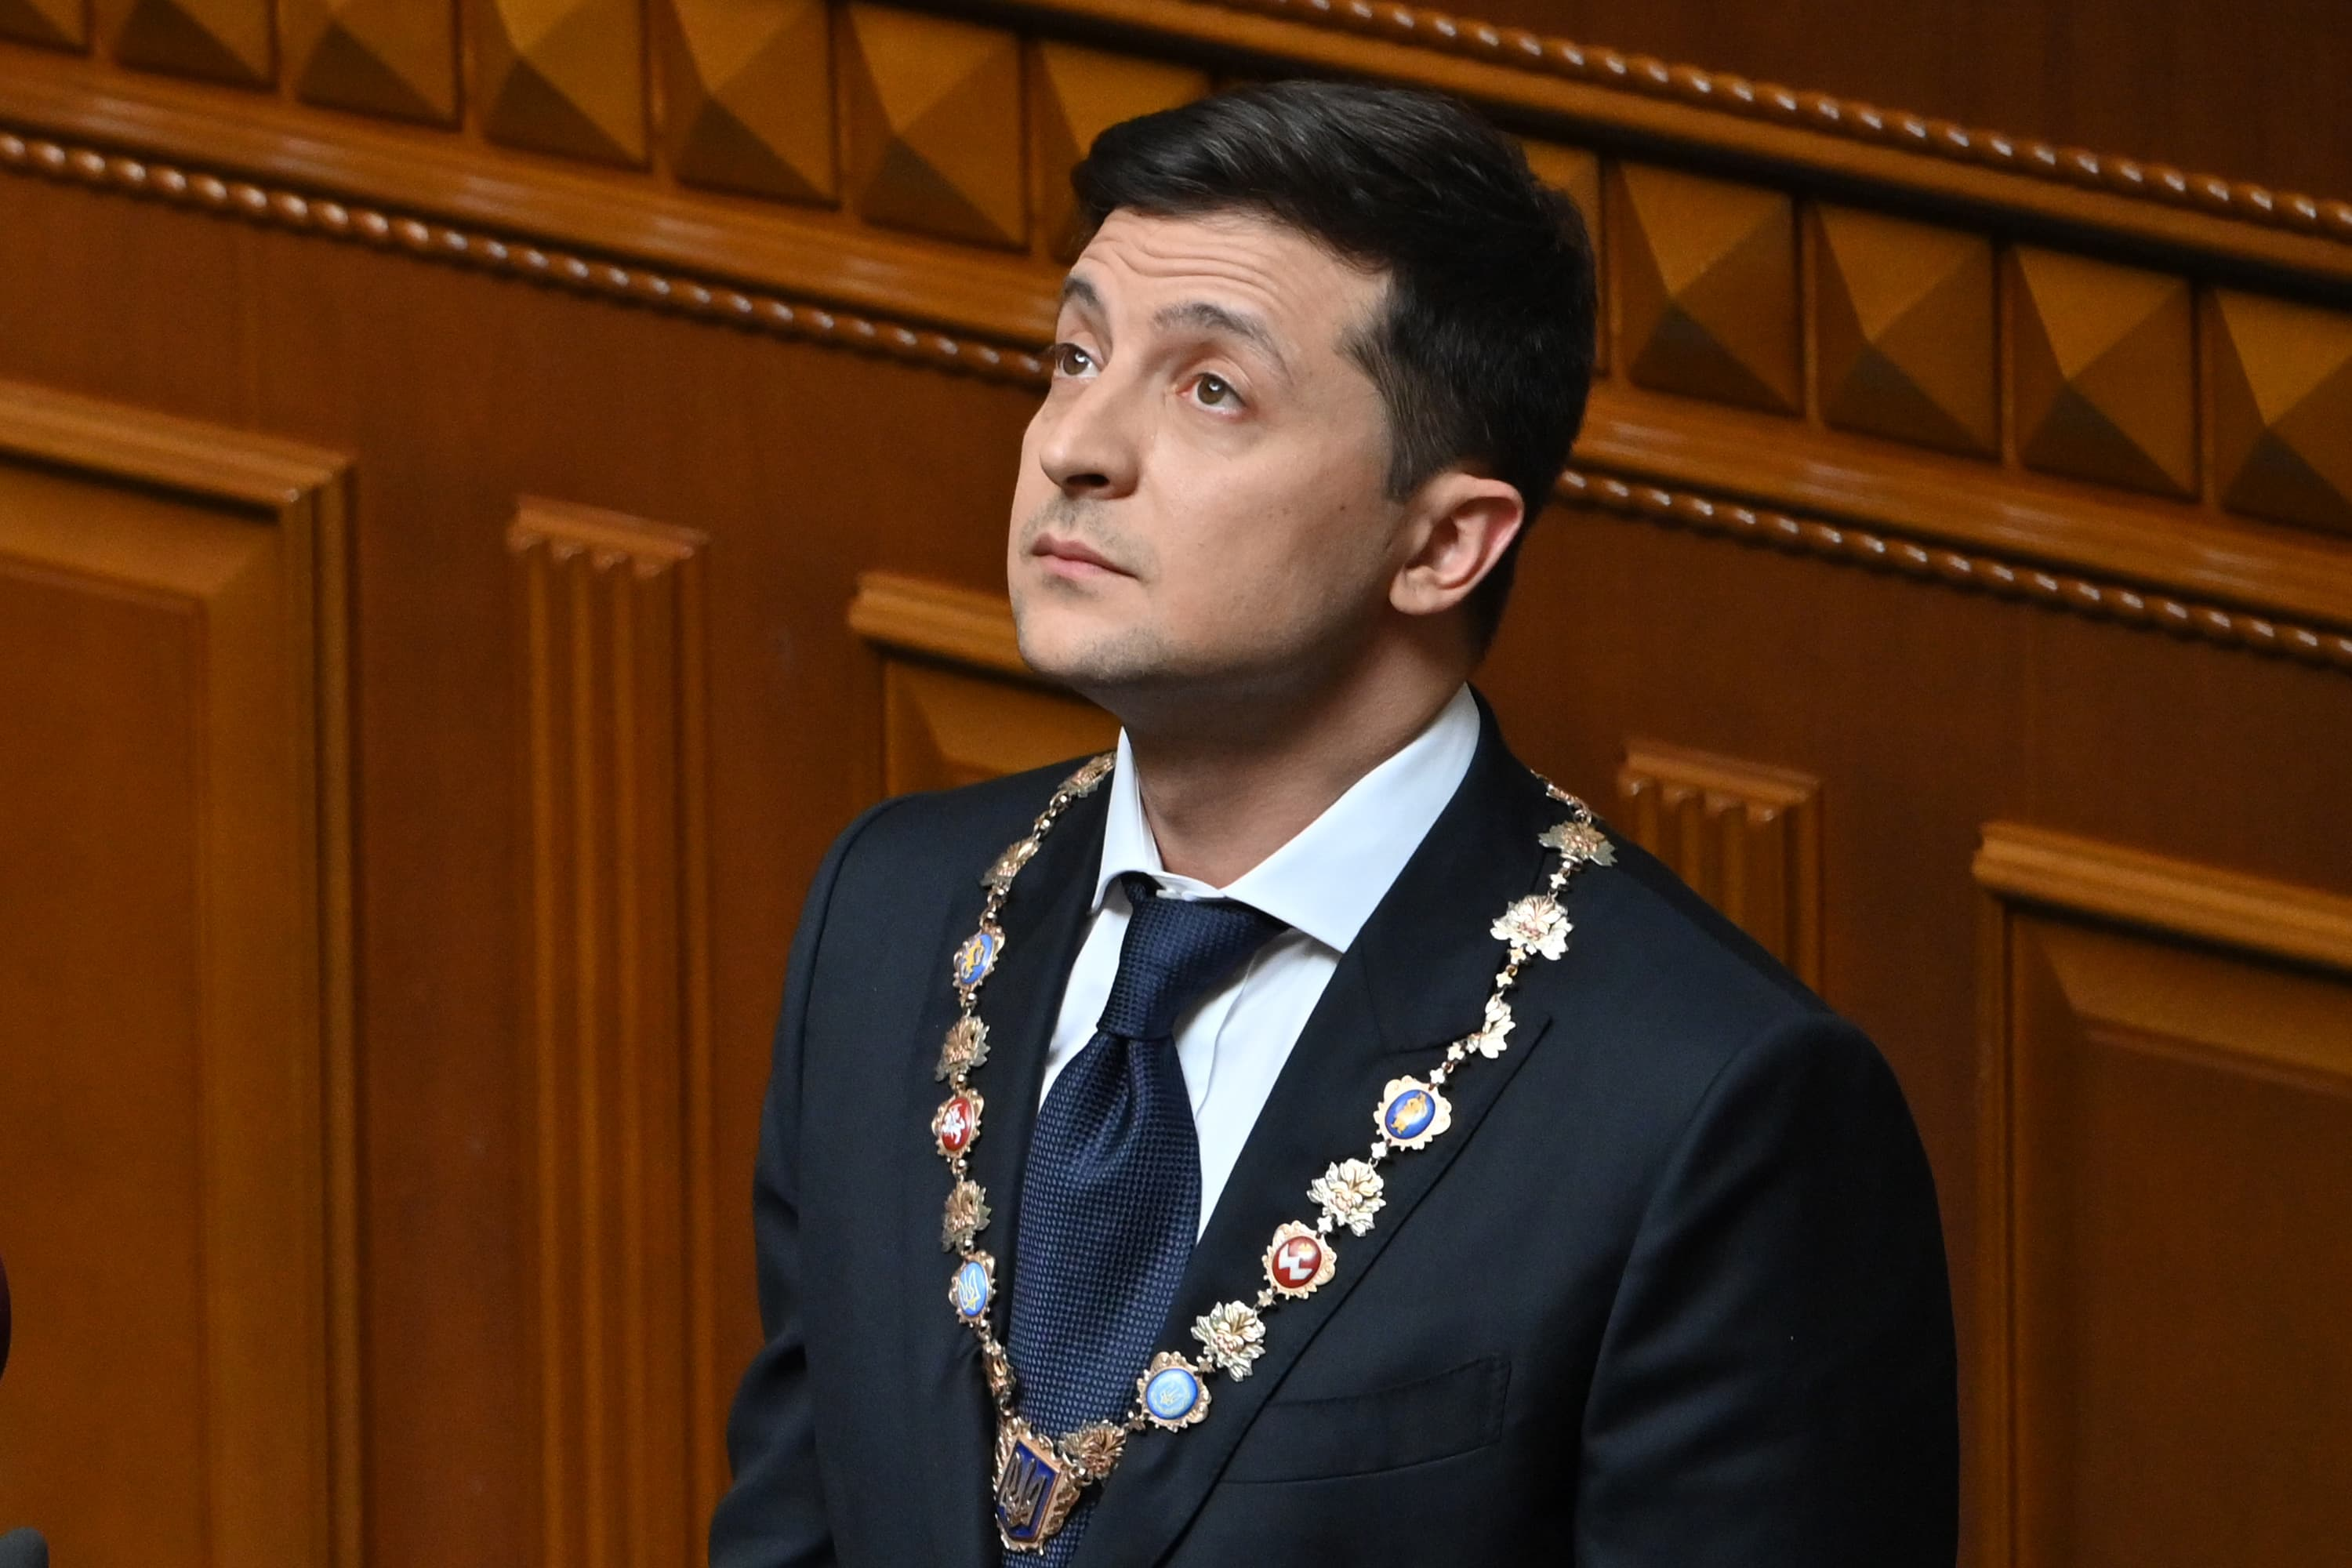 A bank scandal, an oligarch and the IMF: Ukraine's president has a lot to deal with right now